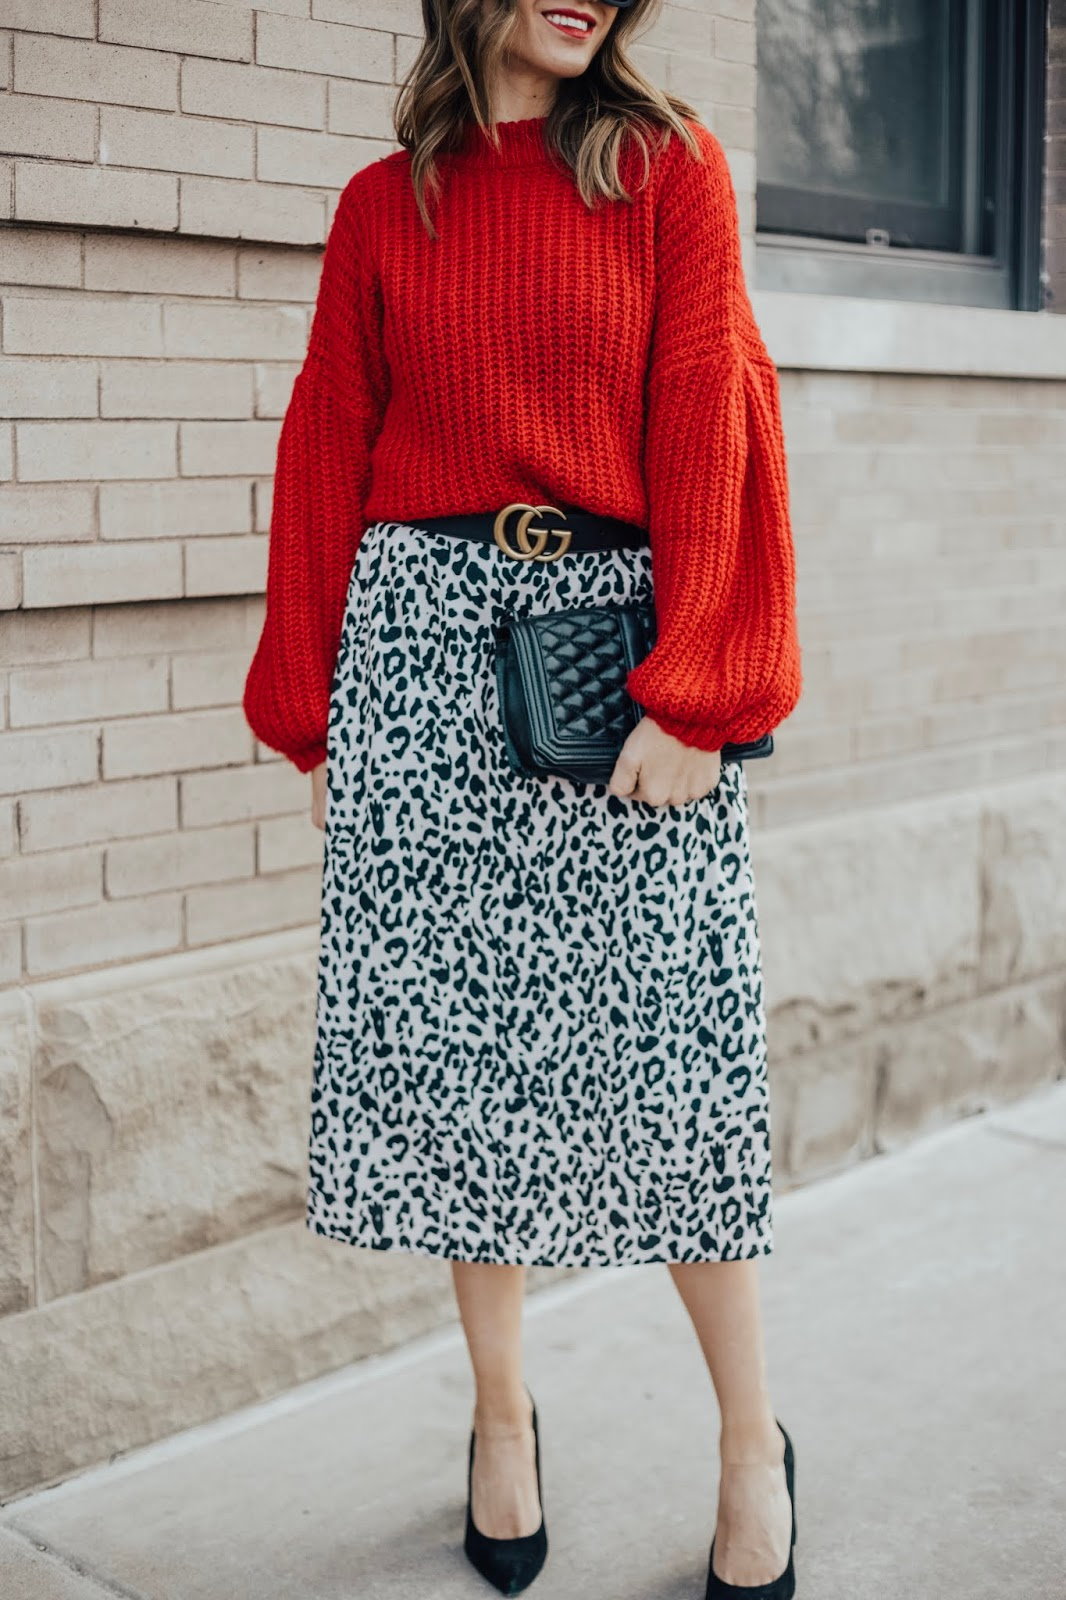 Red Sweater Leopard Skirt and Gucci Belt